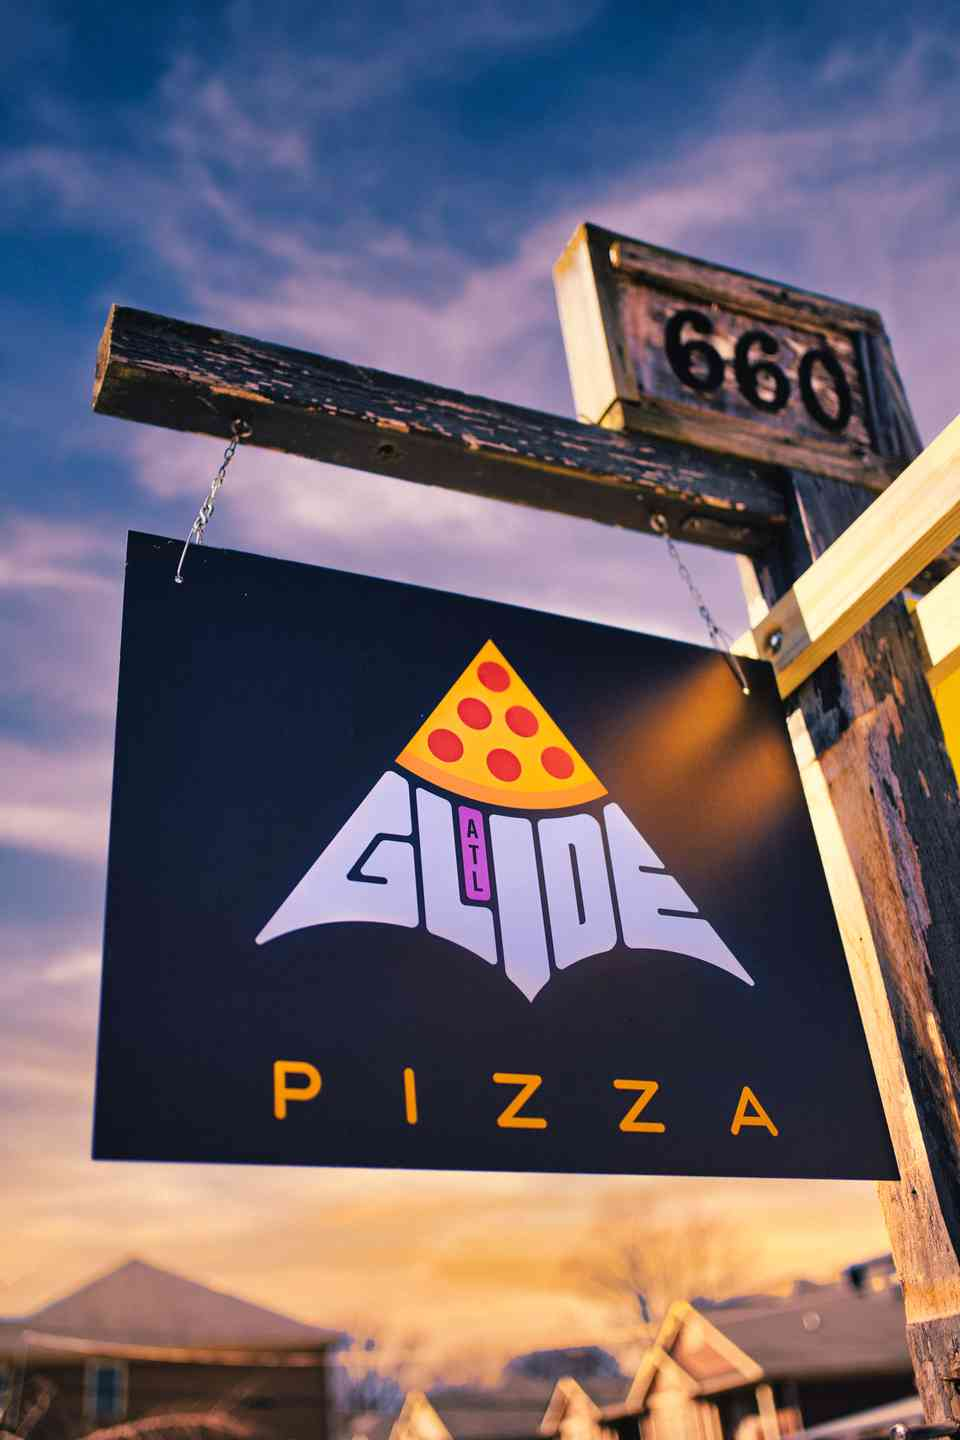 glide pizza sign